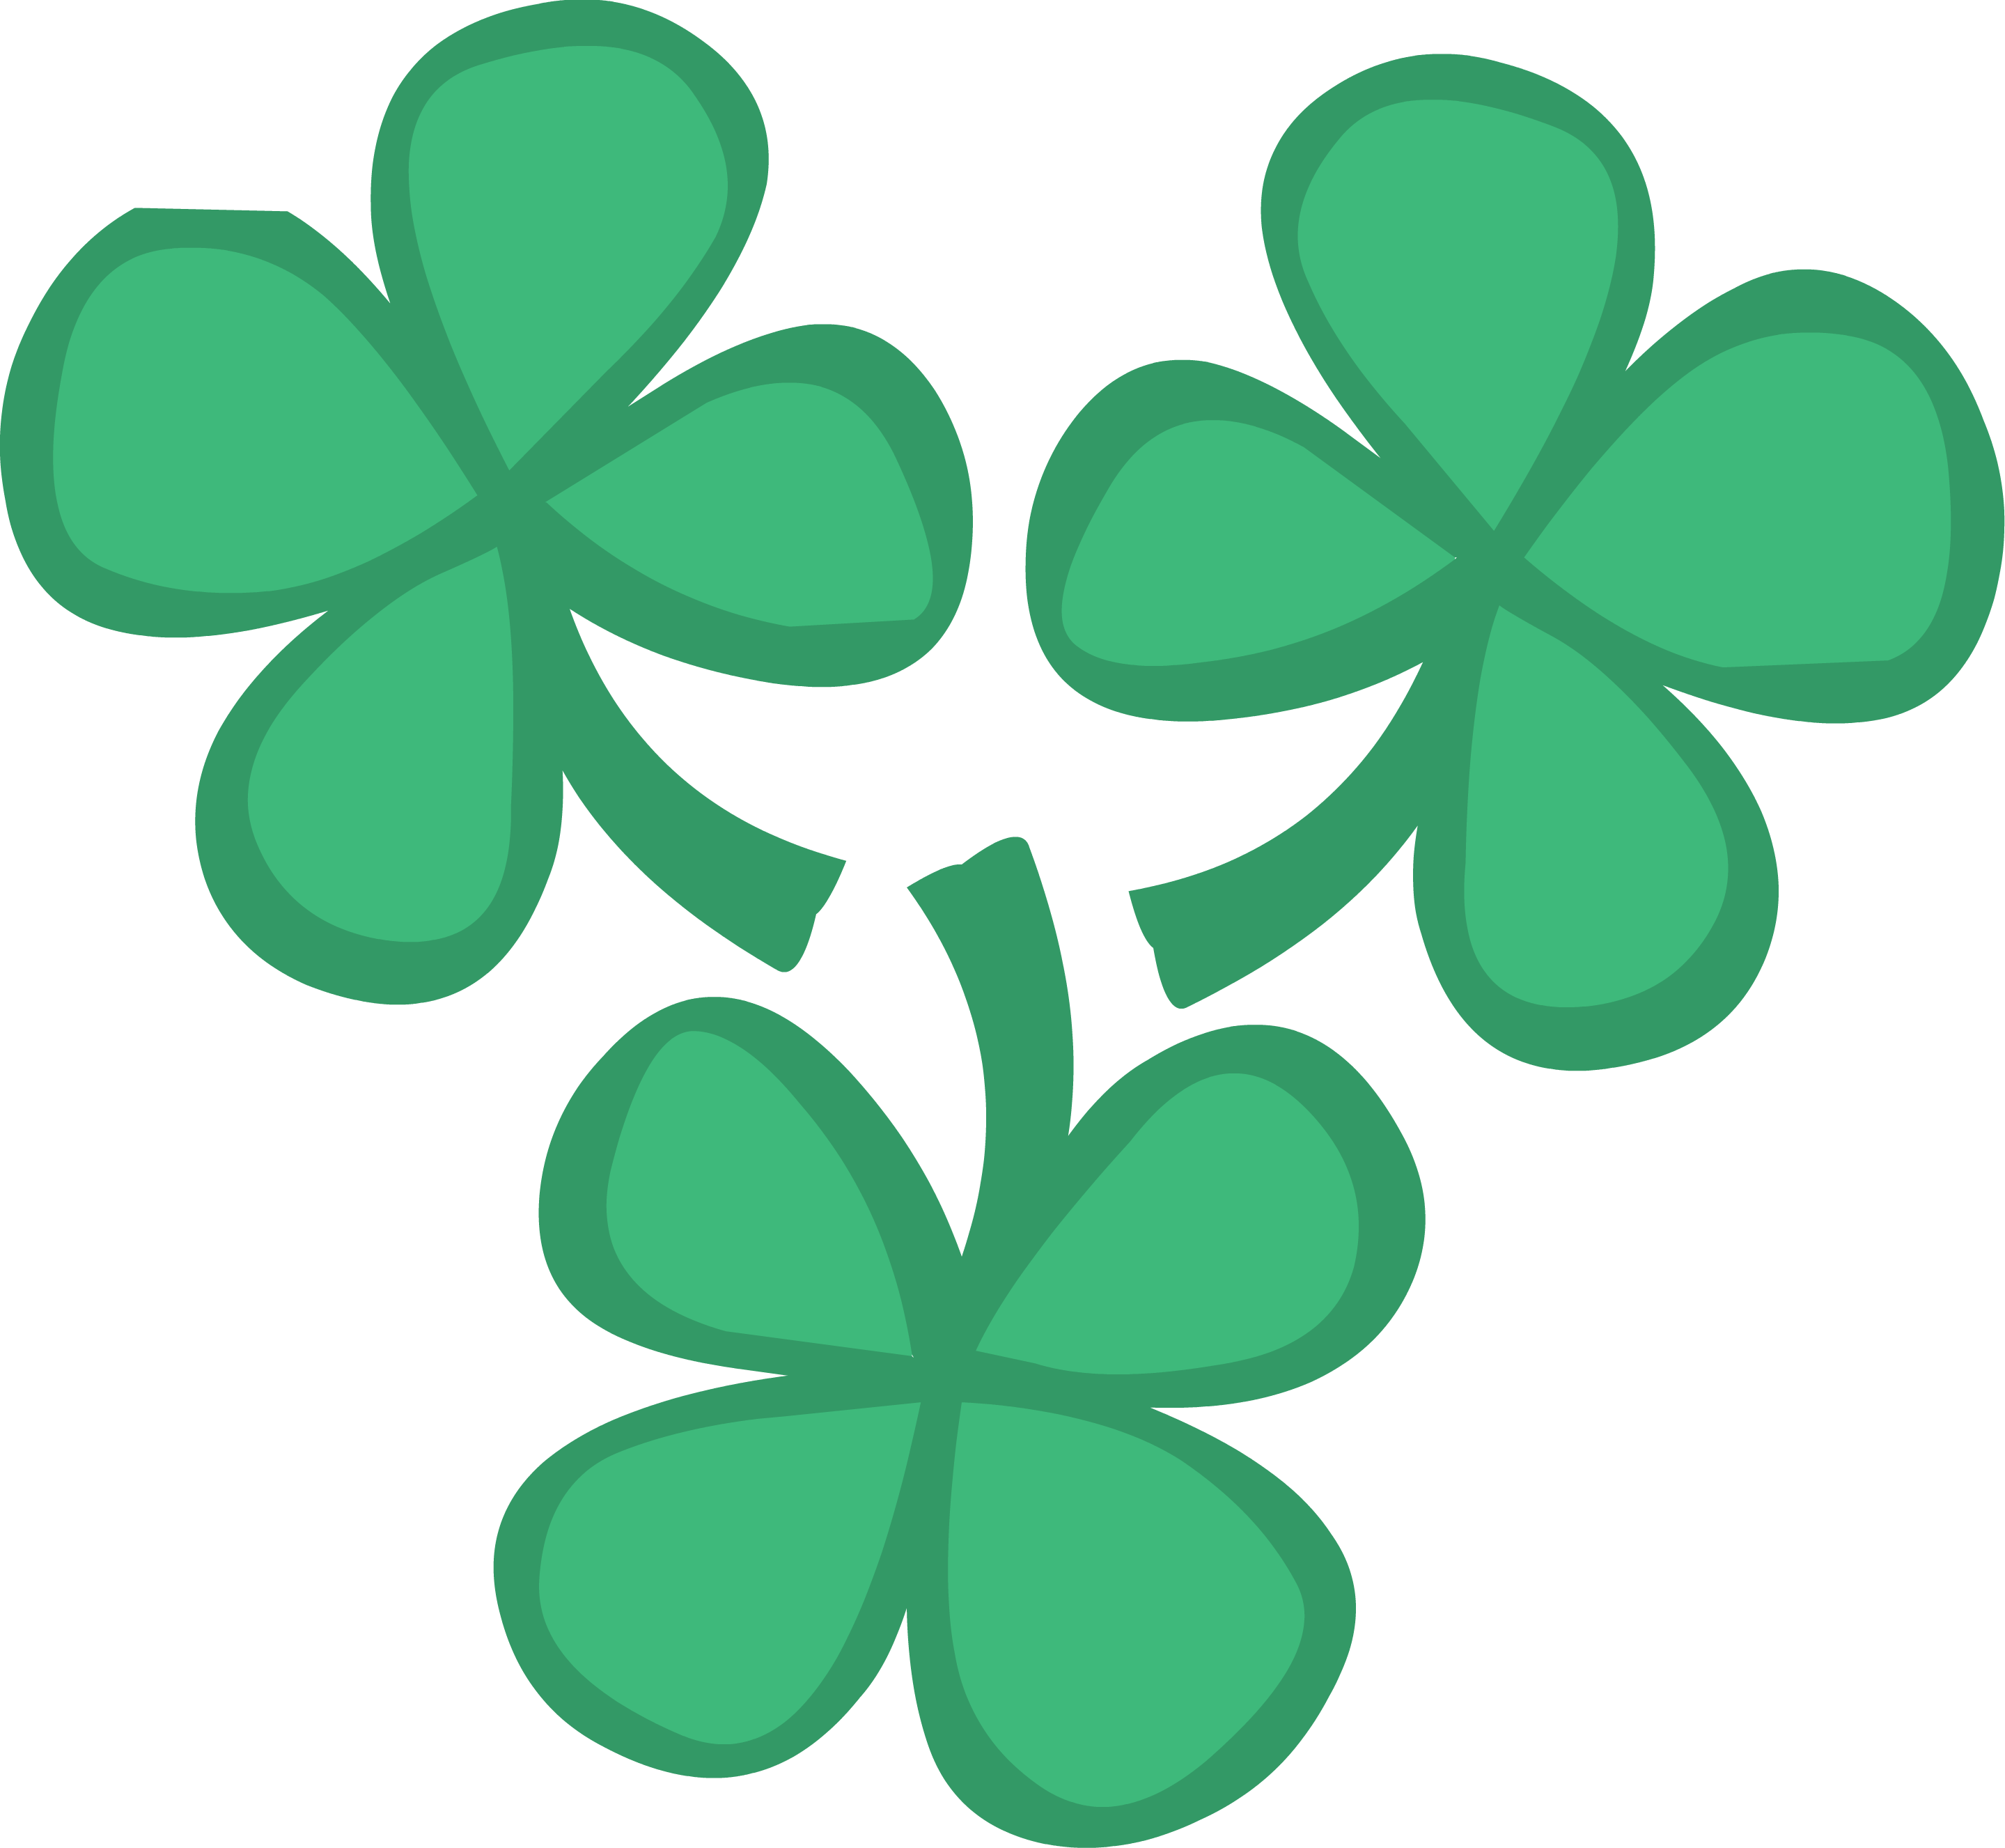 Clover PNG - 16157